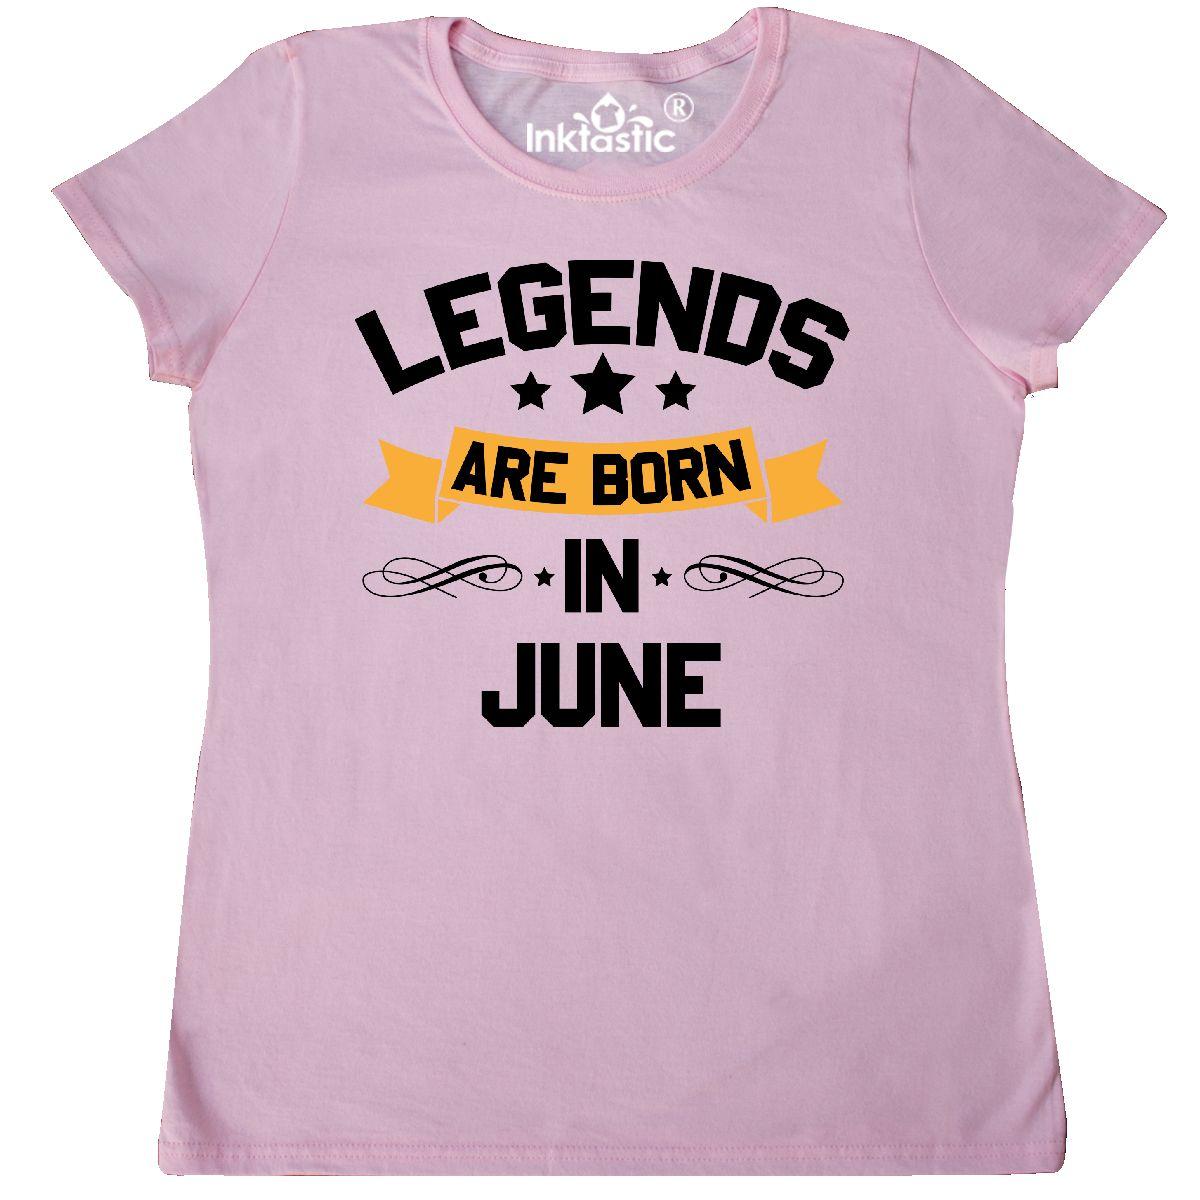 b00552be Inktastic Legends Are Born In June Women's T-Shirt Birthdays Month ...